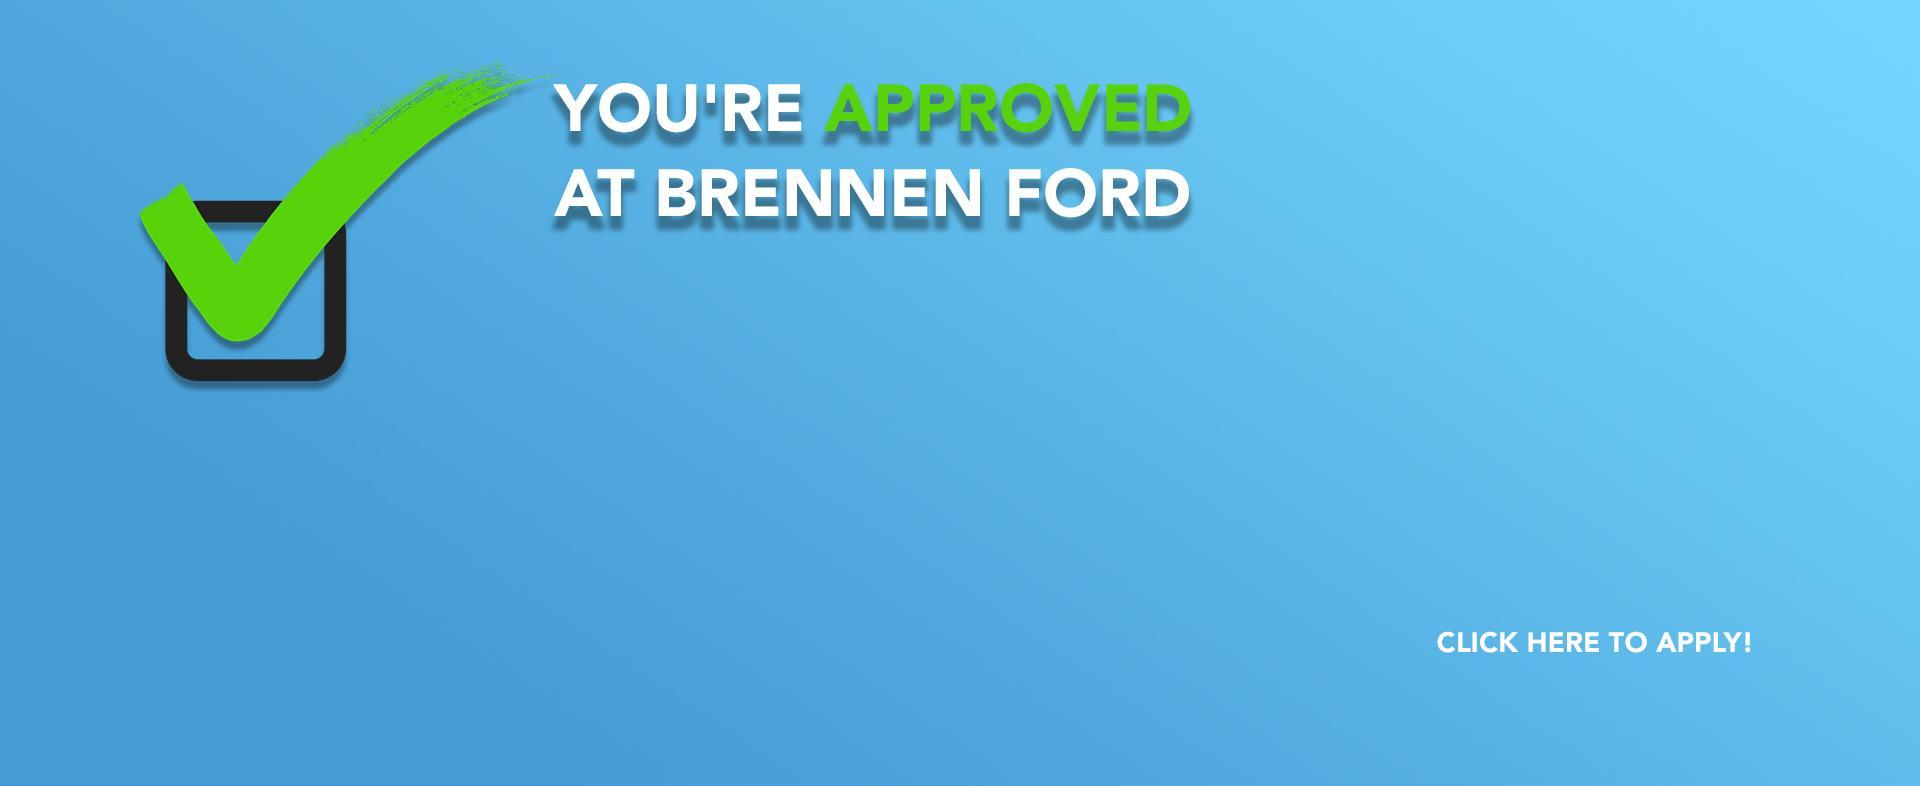 Ford Home You're Approved